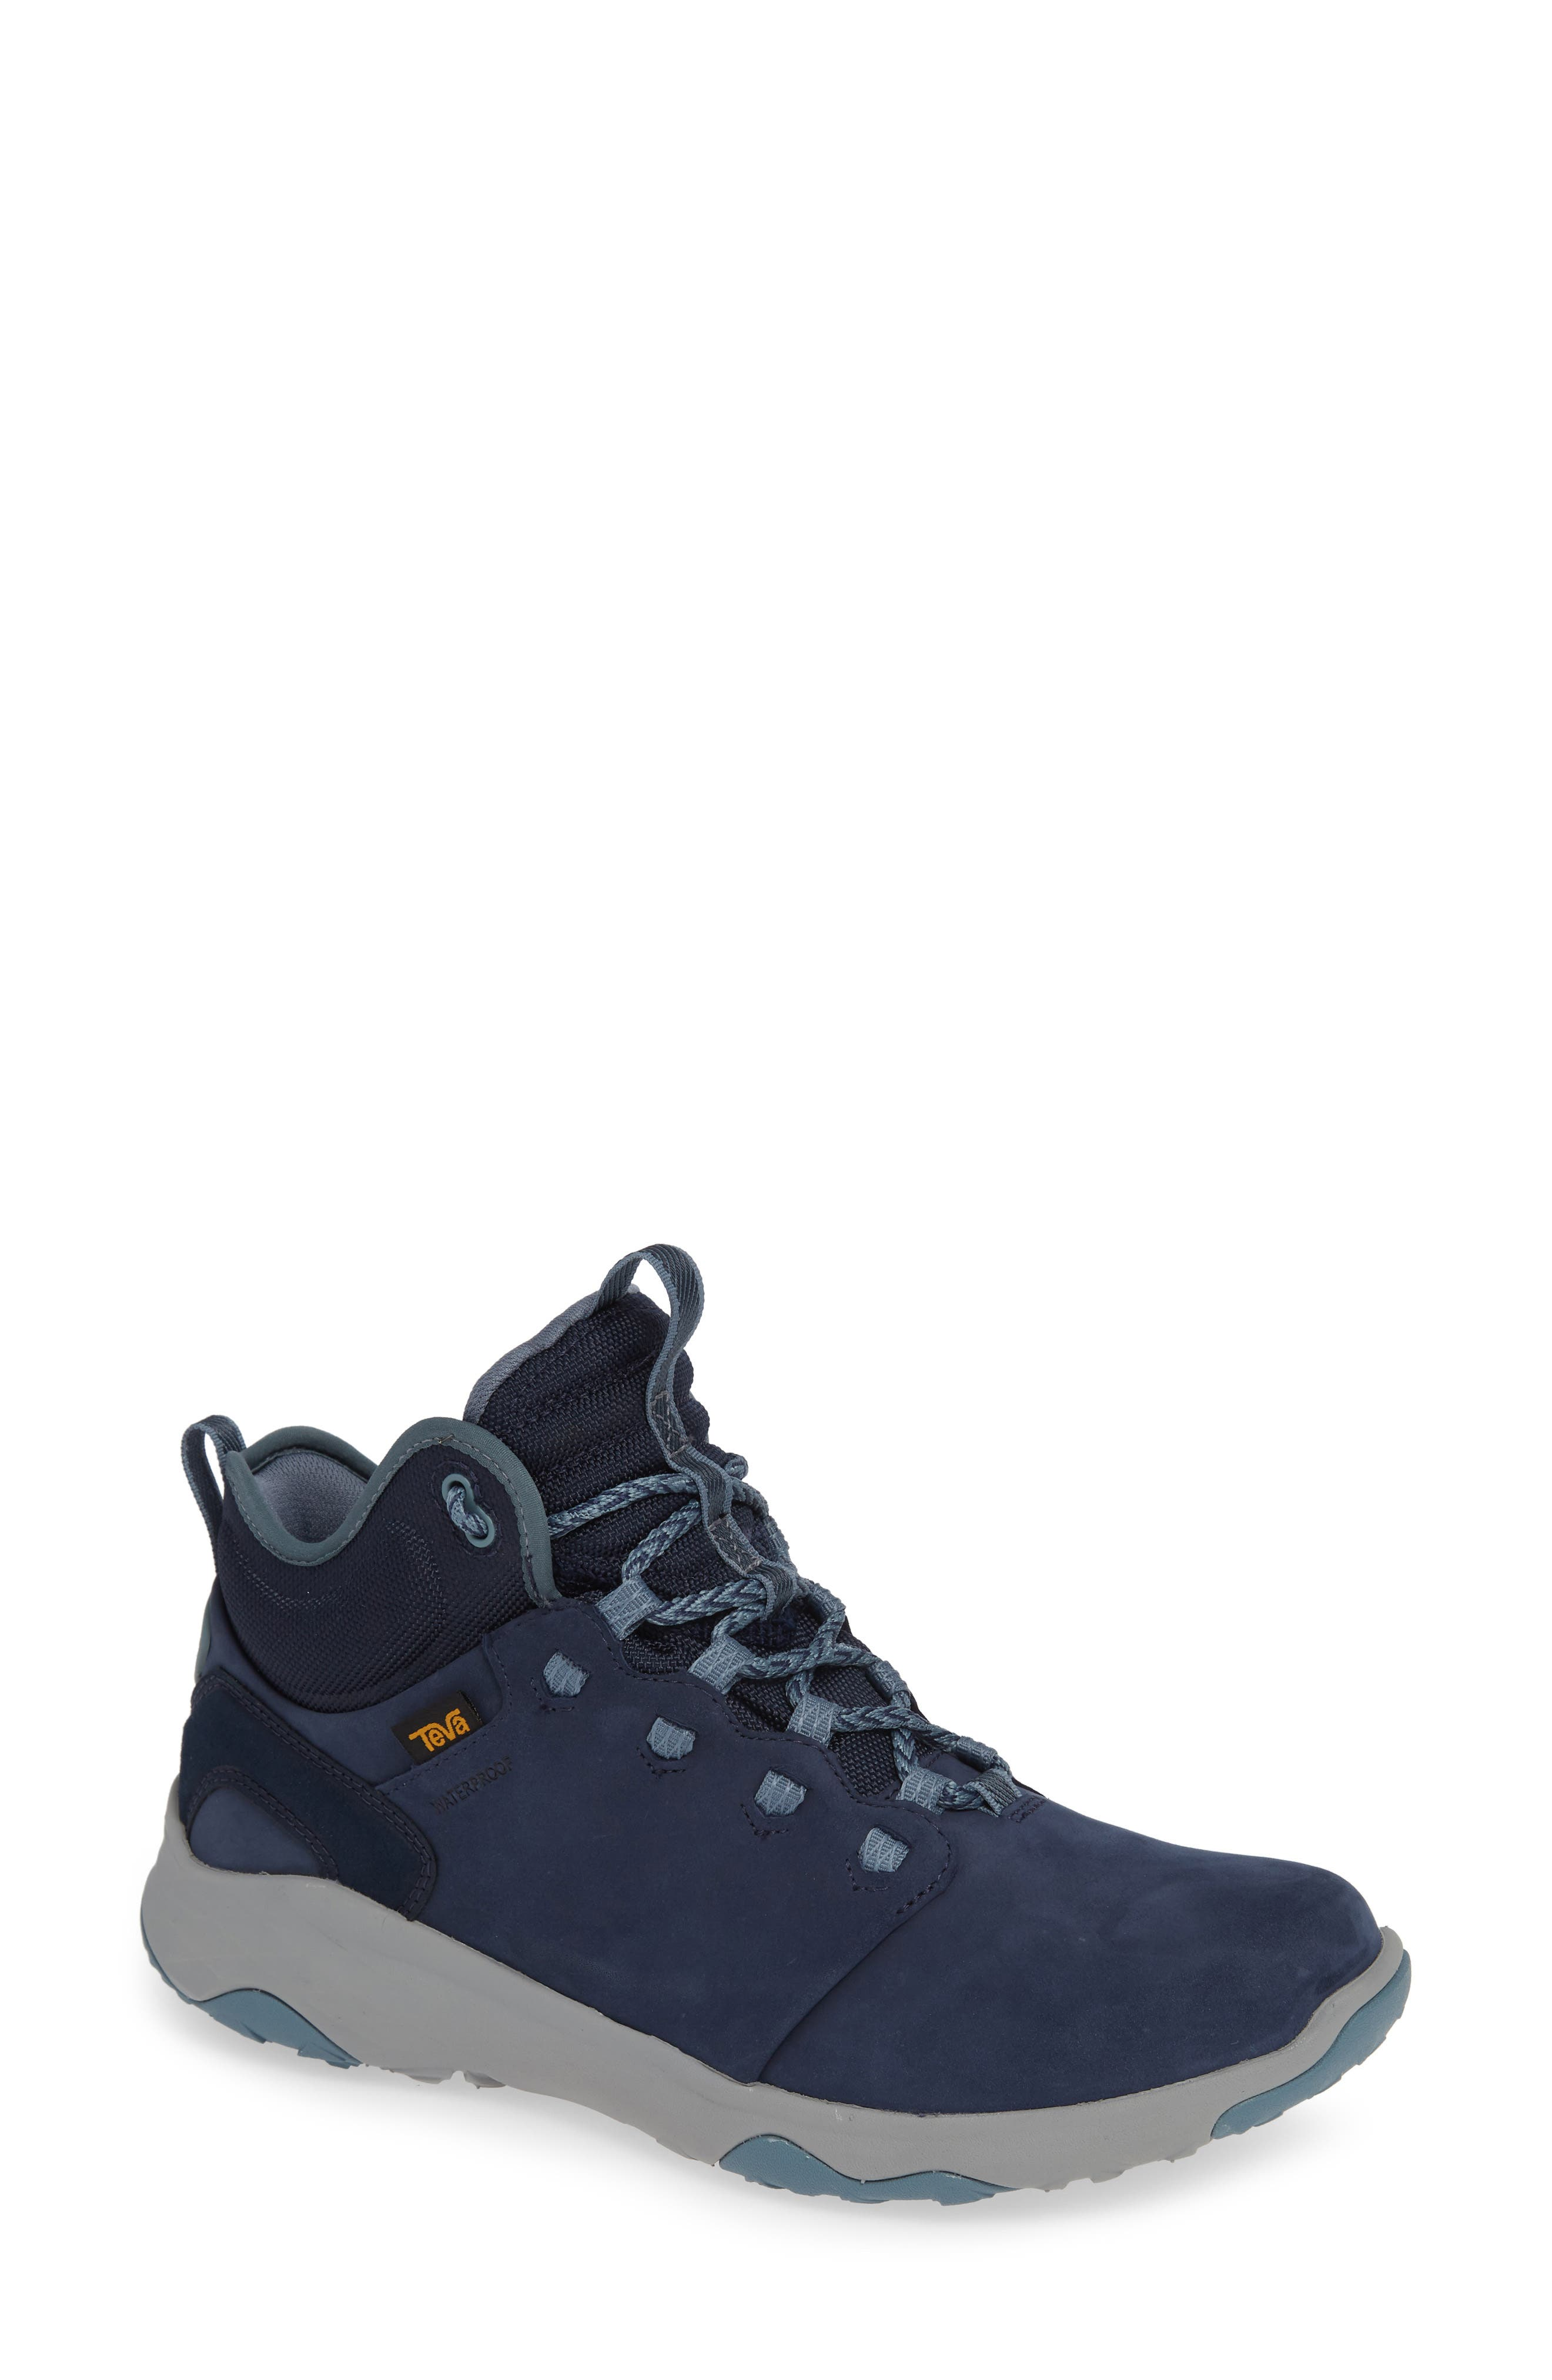 Arrowood 2 Mid Waterproof Sneaker Boot,                             Main thumbnail 1, color,                             414